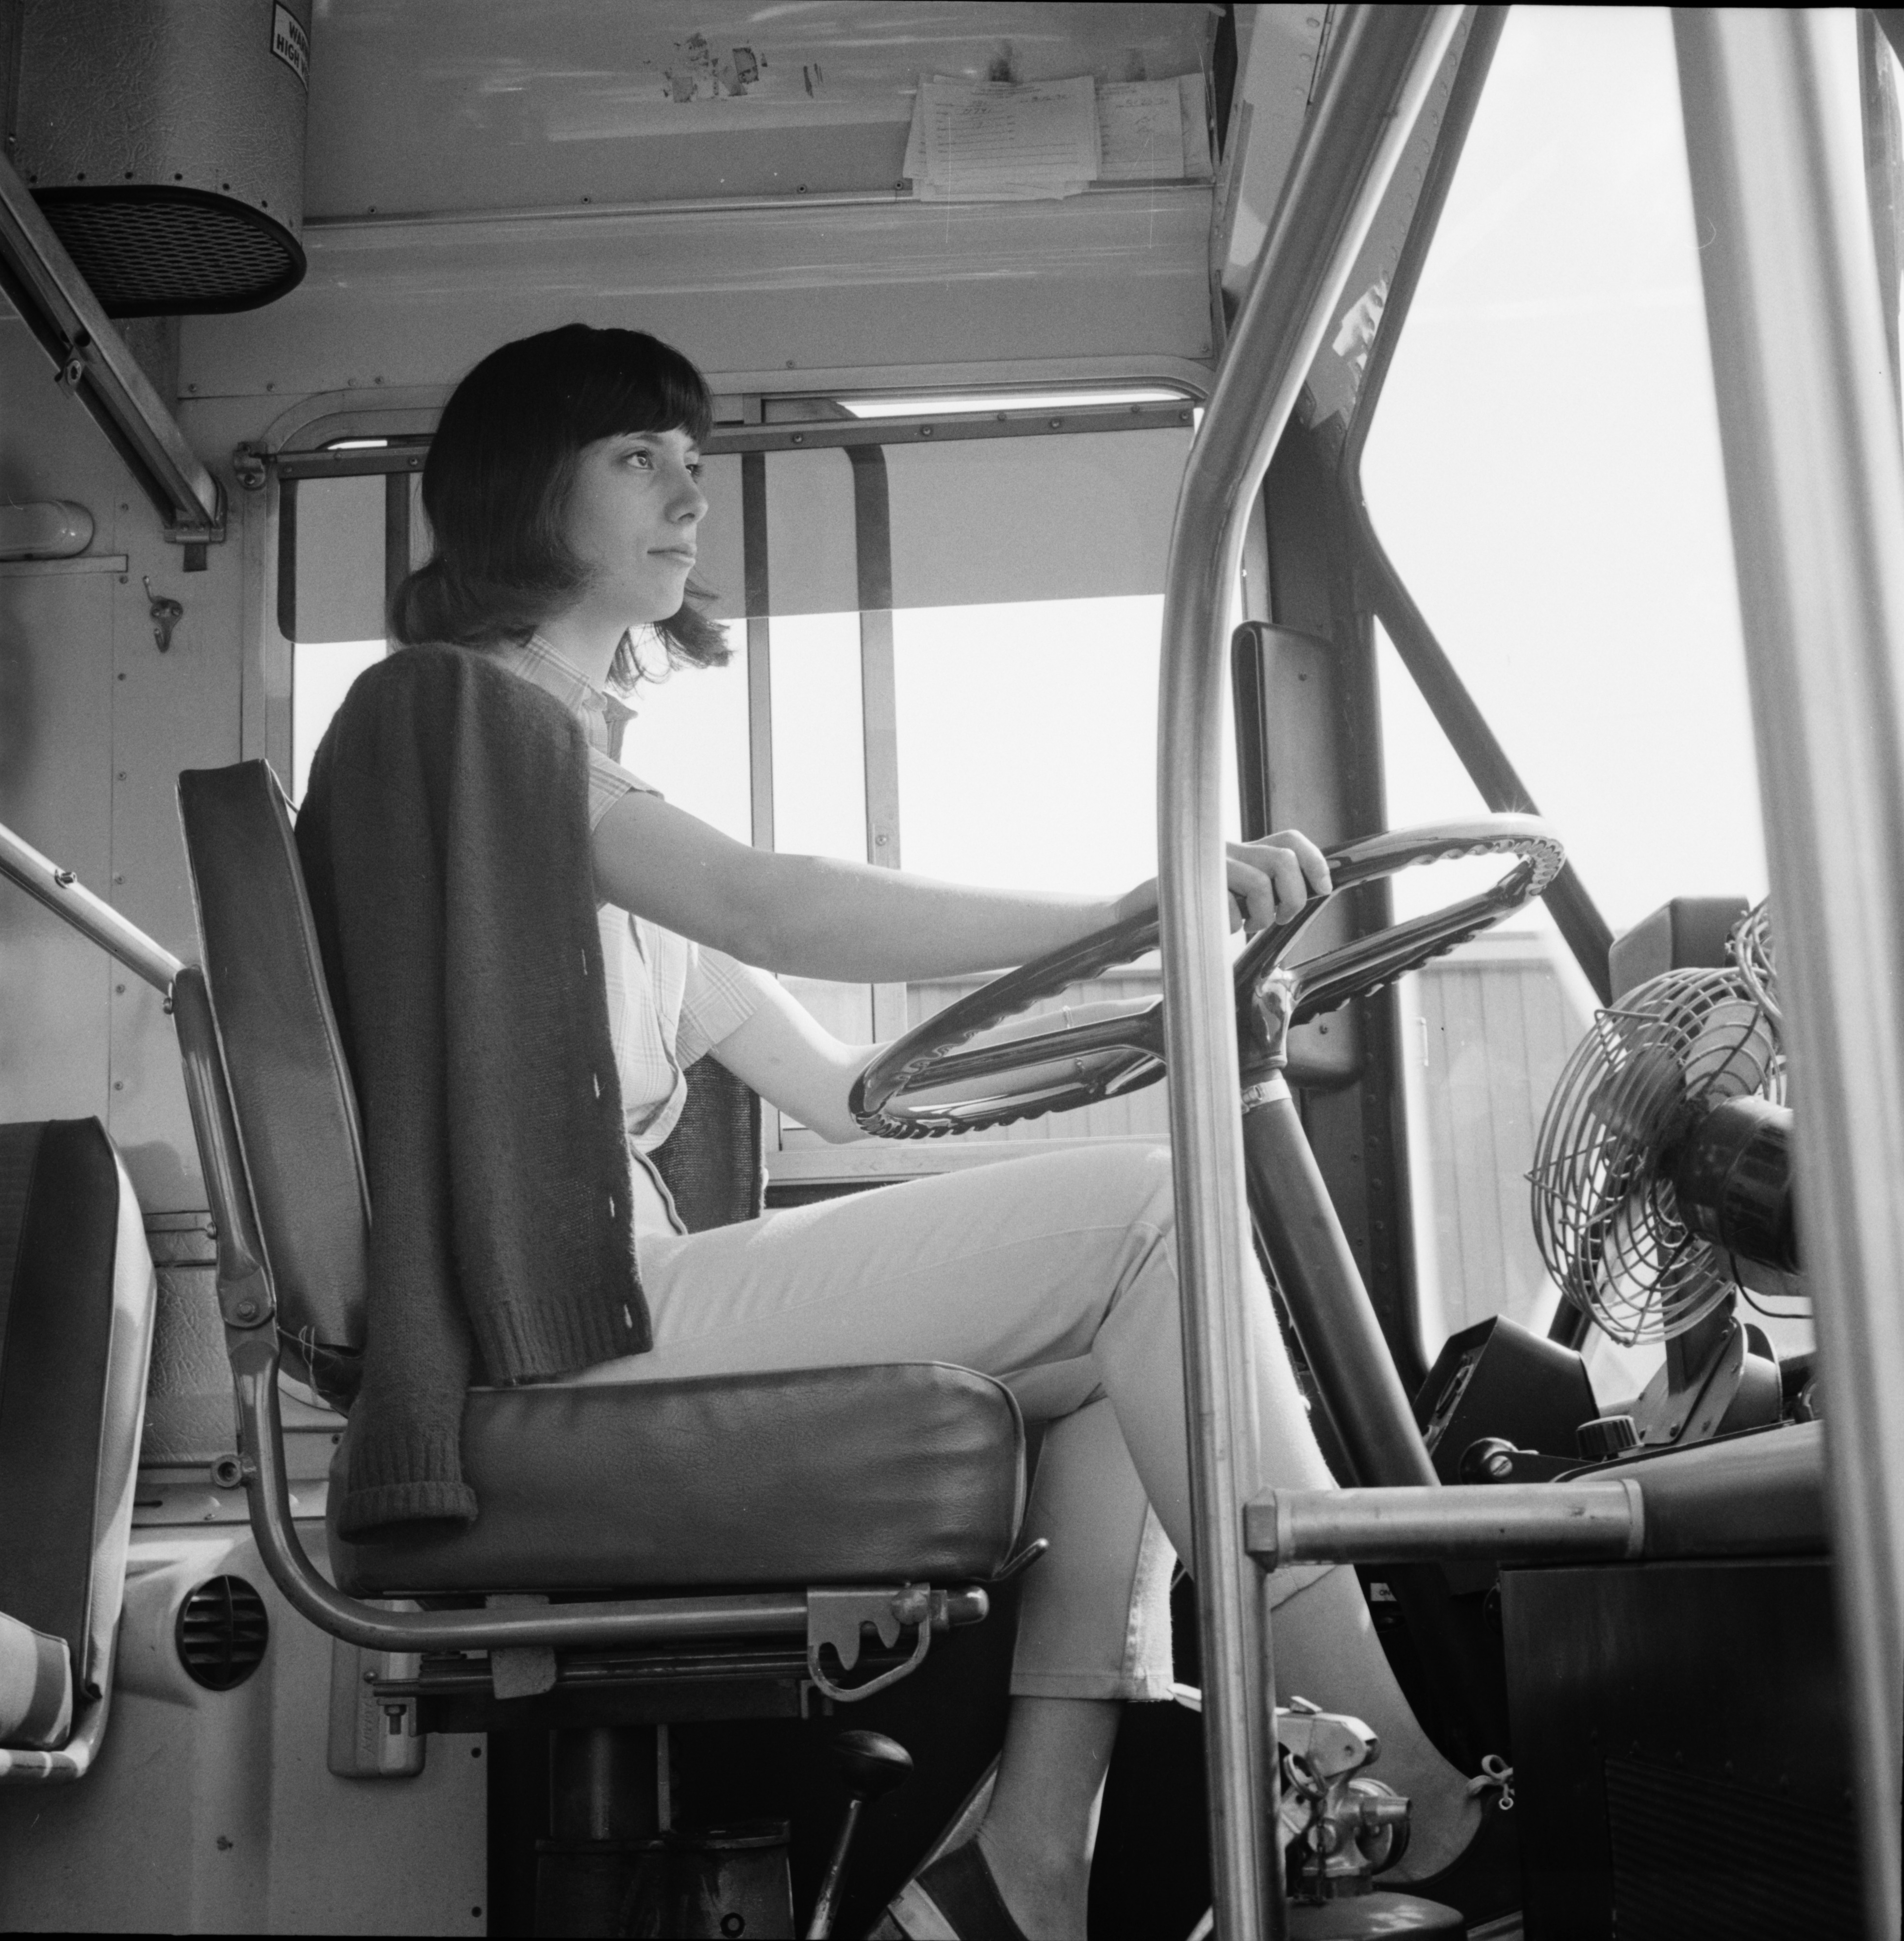 Cathy Rosey is the University's First Woman Bus Driver, September 1970 image